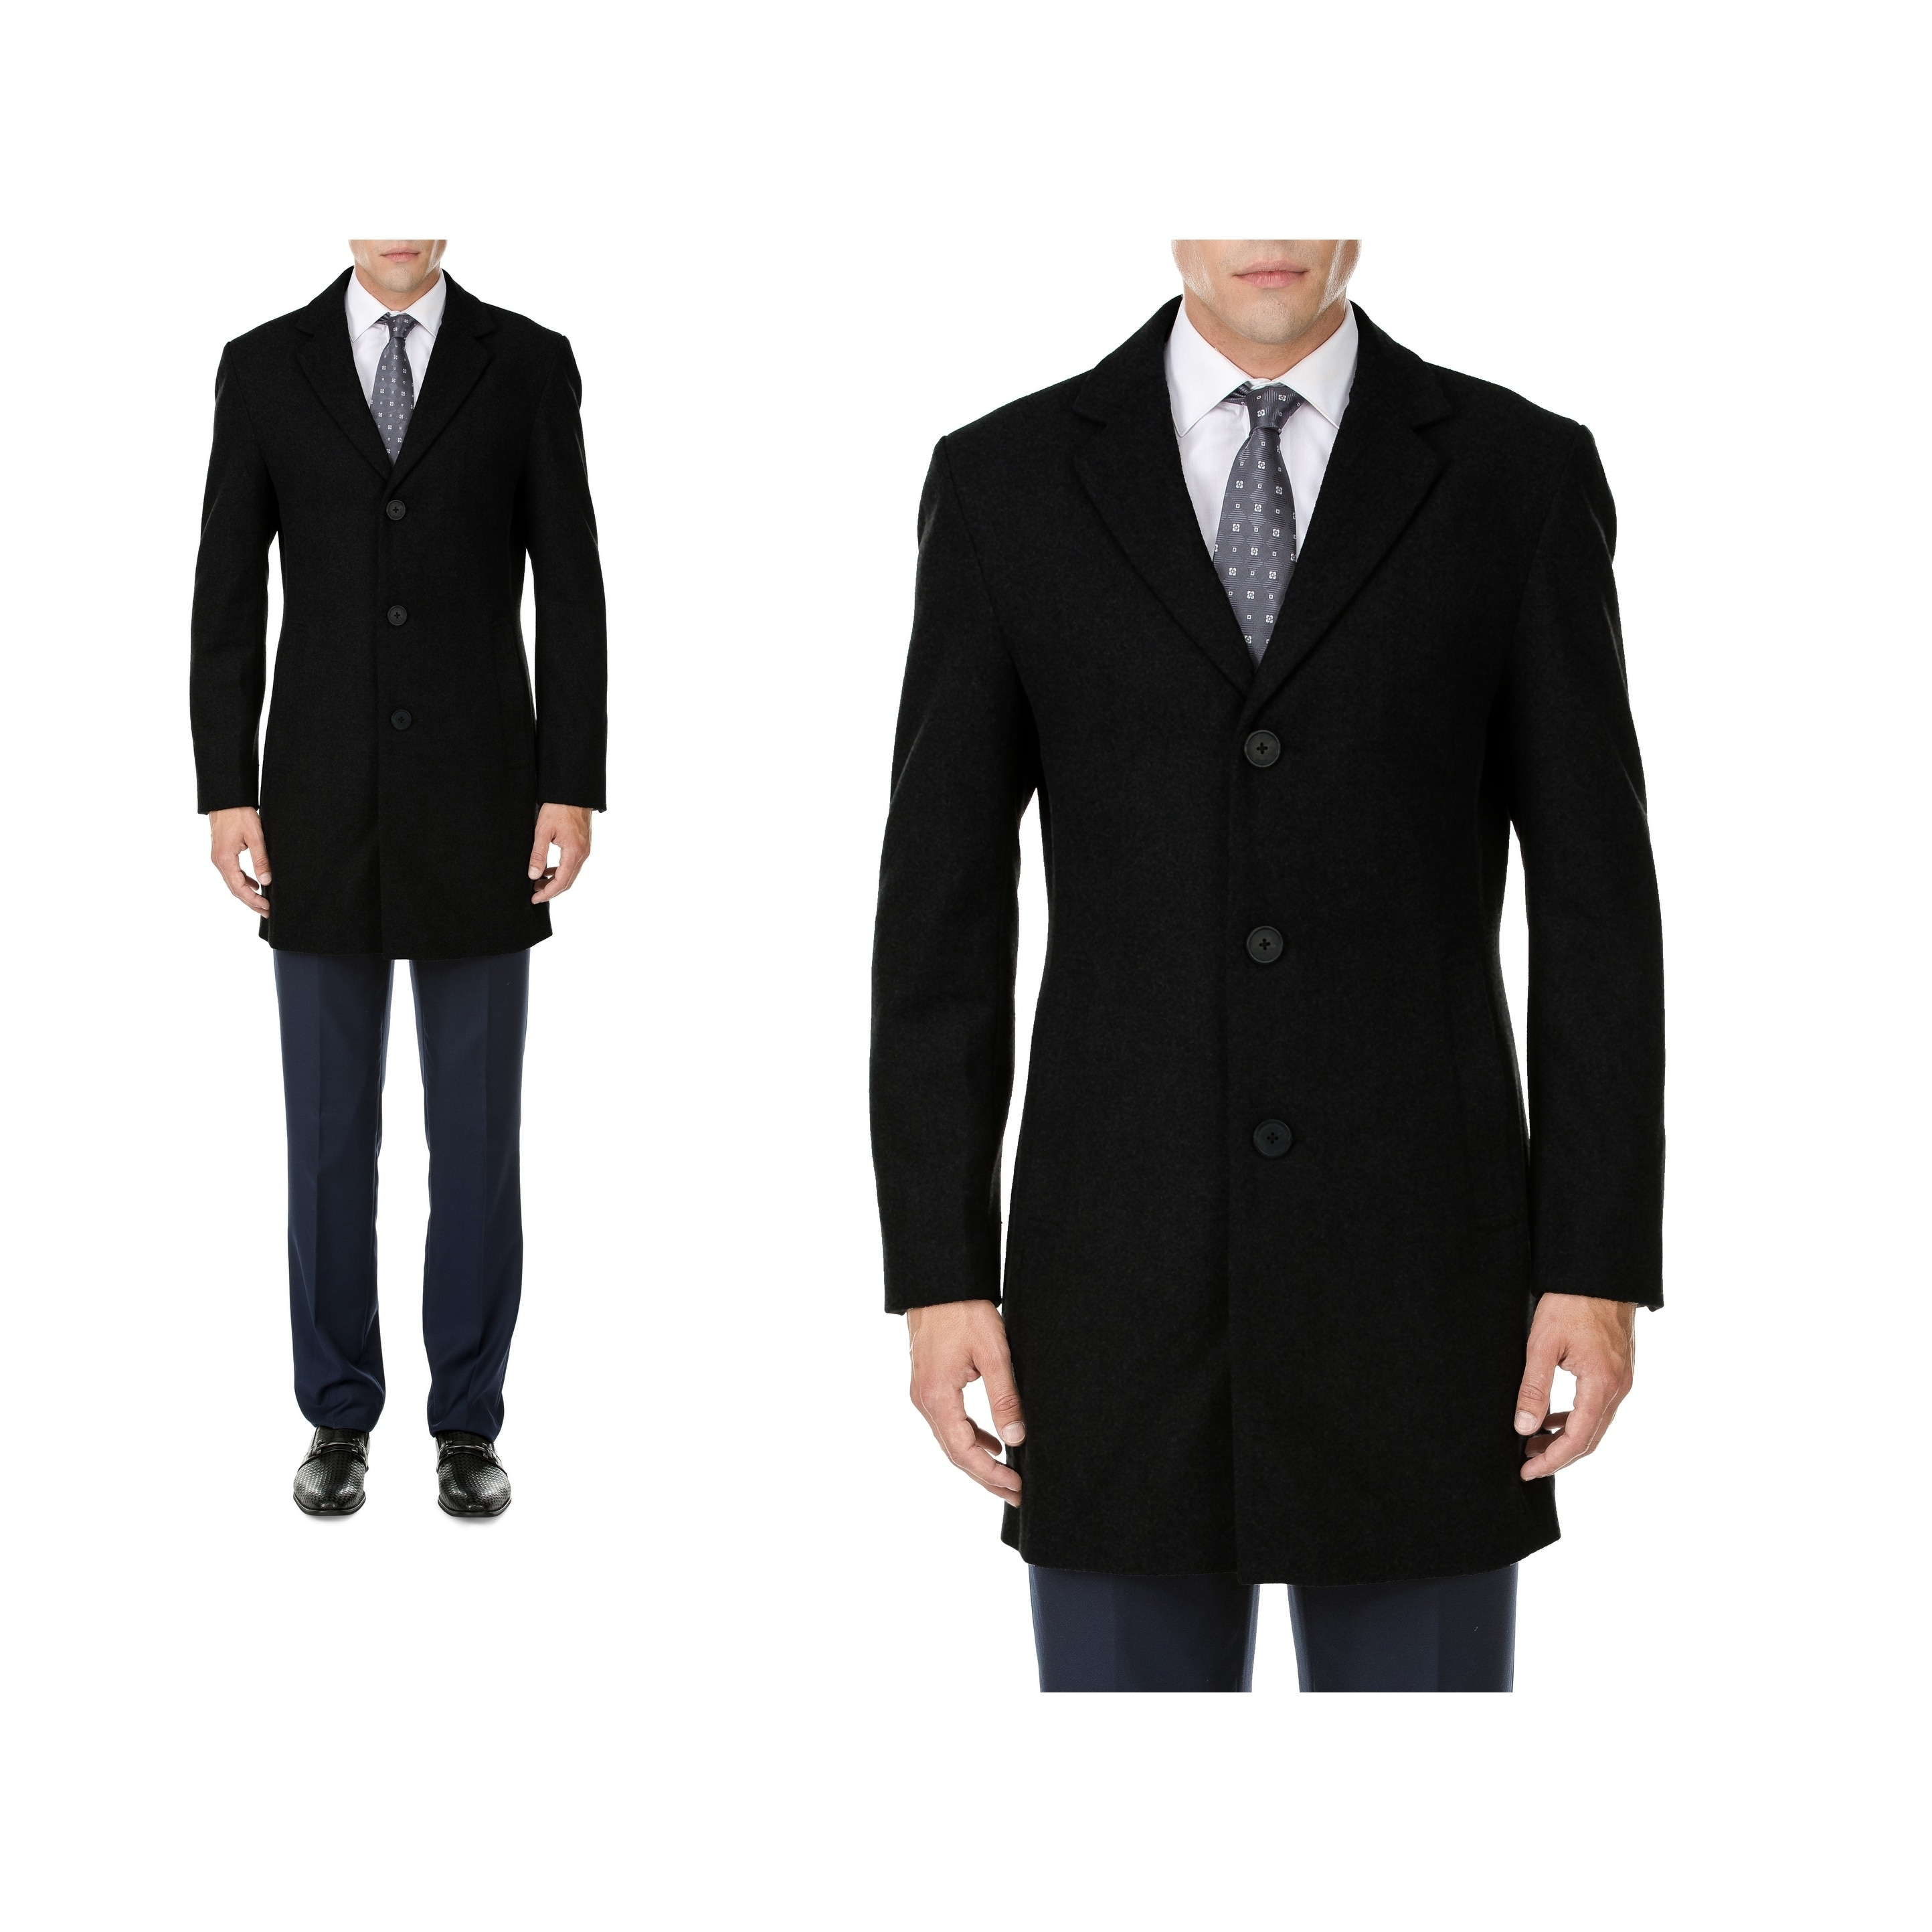 Daily Haute MDRN Uomo Men's Single Breasted Wool Blend Coats by Mens Wool Coats